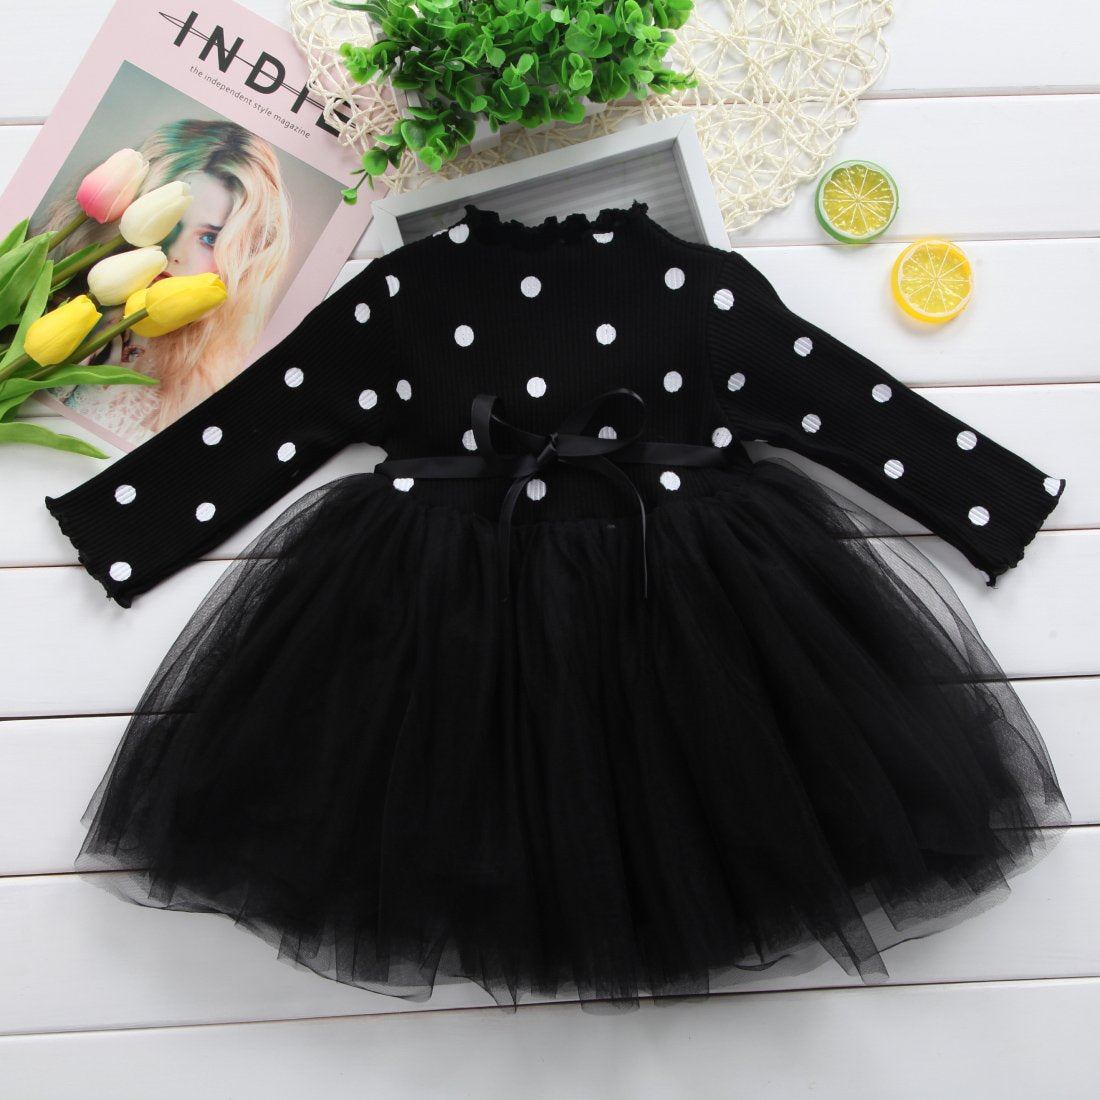 - 0-4T Kid Girls Princess Baby Dress Newborn Infant Baby Girl Clothes Bow Dot Tutu Ball Gown Party Dresses Baby Kid Girl clothes - Black / 12M  jetcube